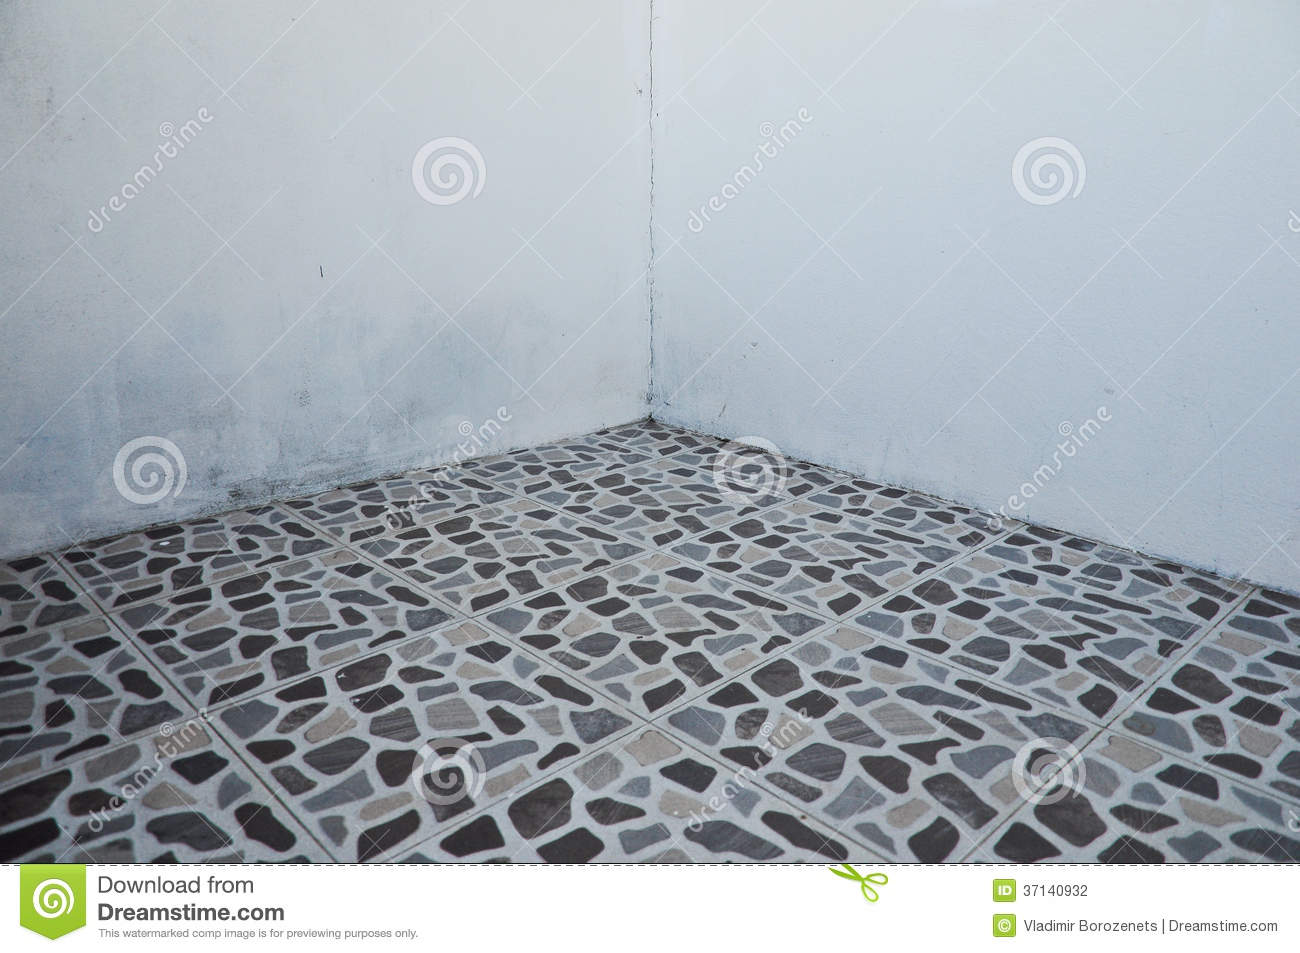 Broken tiles mosaic floor or wall background texture stock photo - Tiles Wall And Floor Background Stock Photo